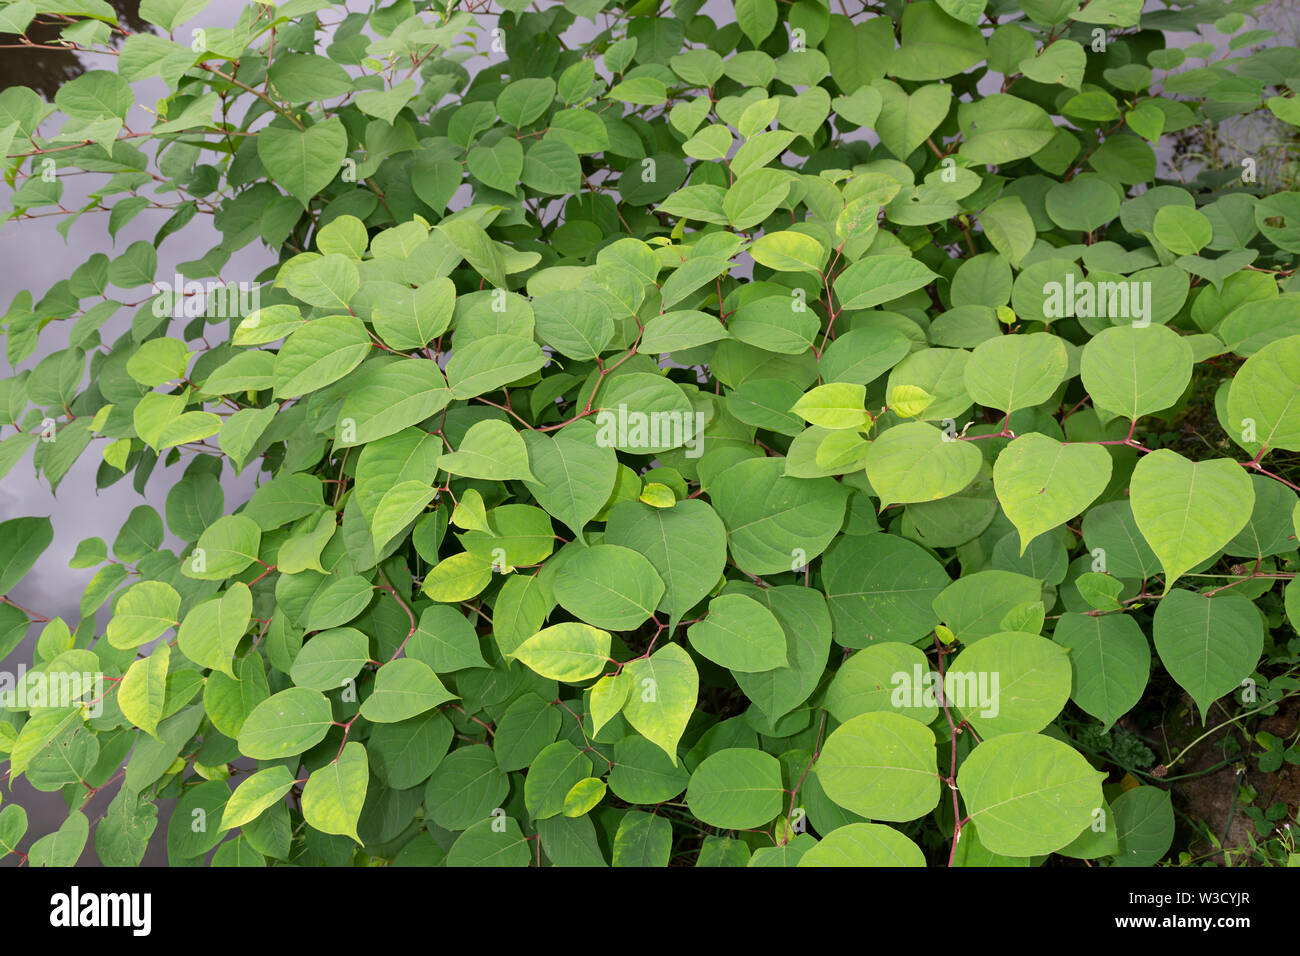 The invasive plant specifies Japanese Knotweed (Reynoutria japonica, Fallopia japonica or Polygonum cuspidatum) grows beside a river embankment. Stock Photo